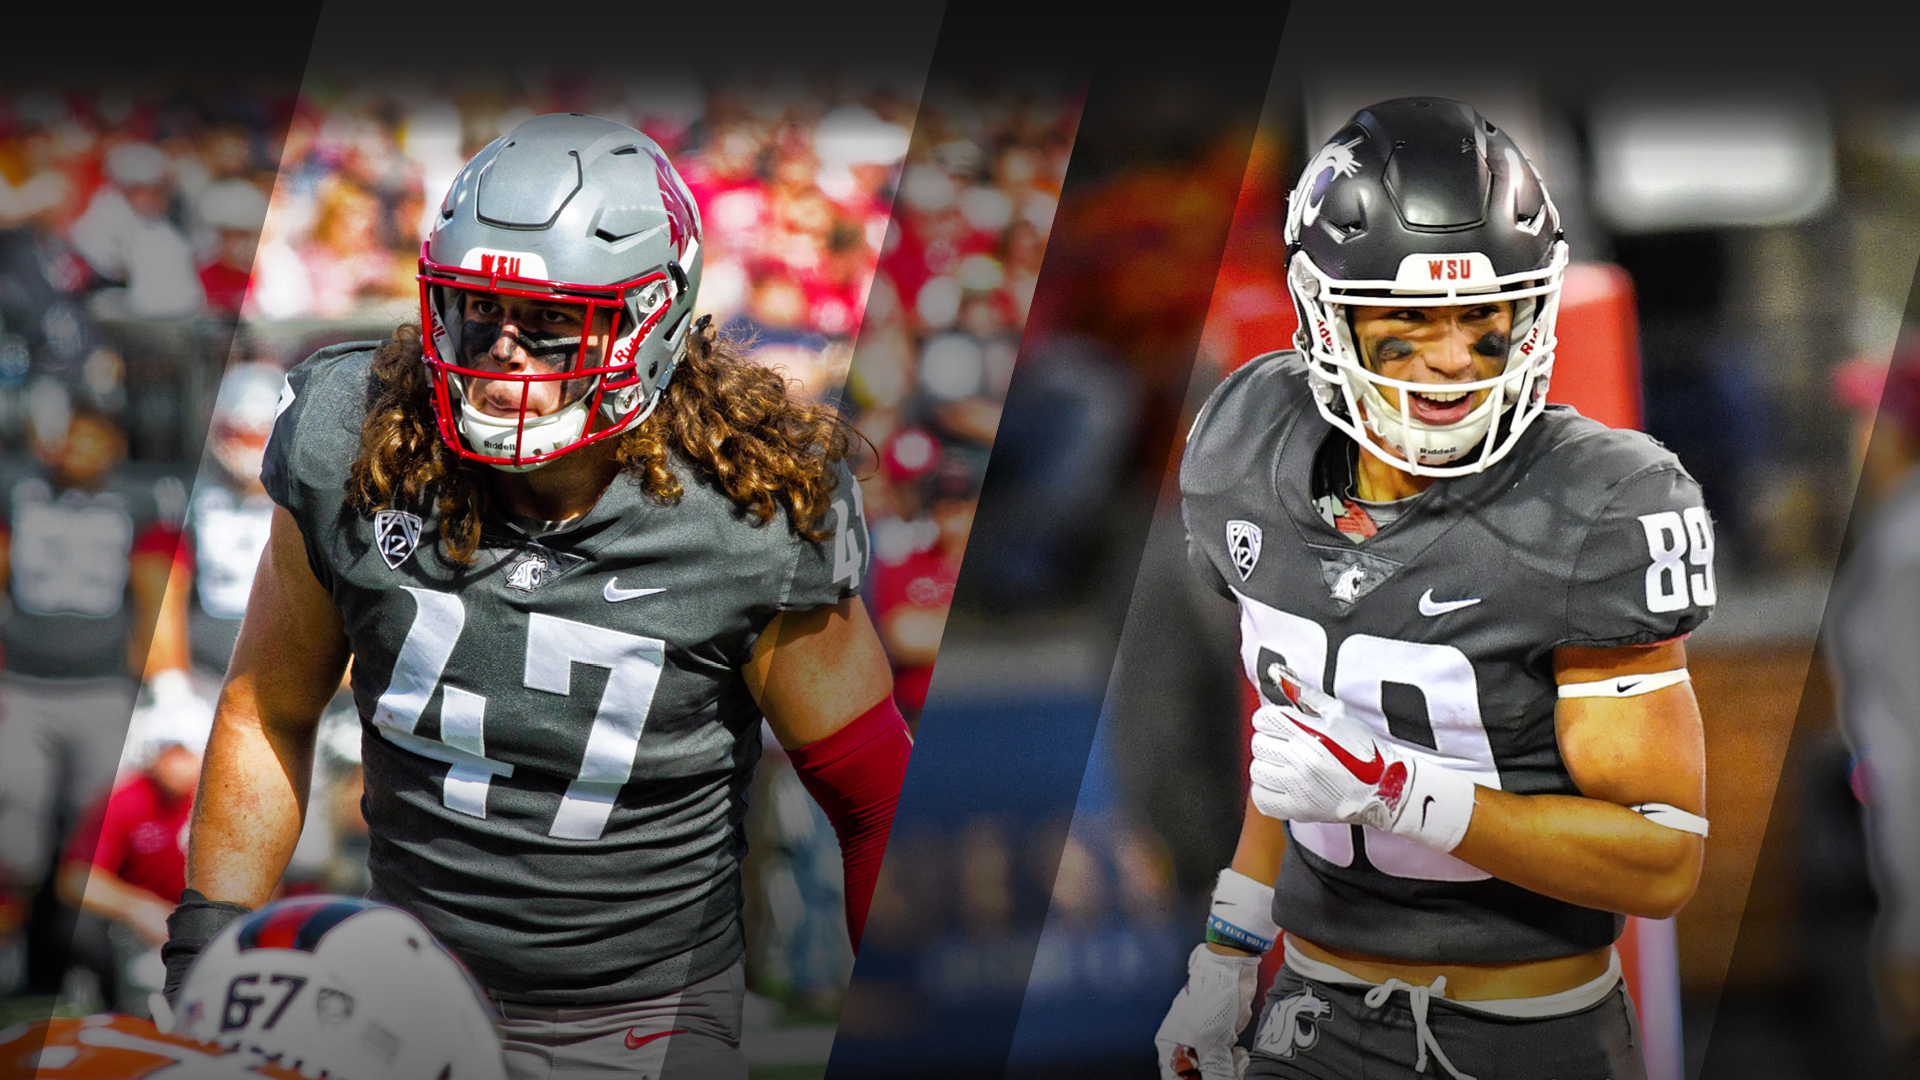 Fb_all_academic_wsucougars